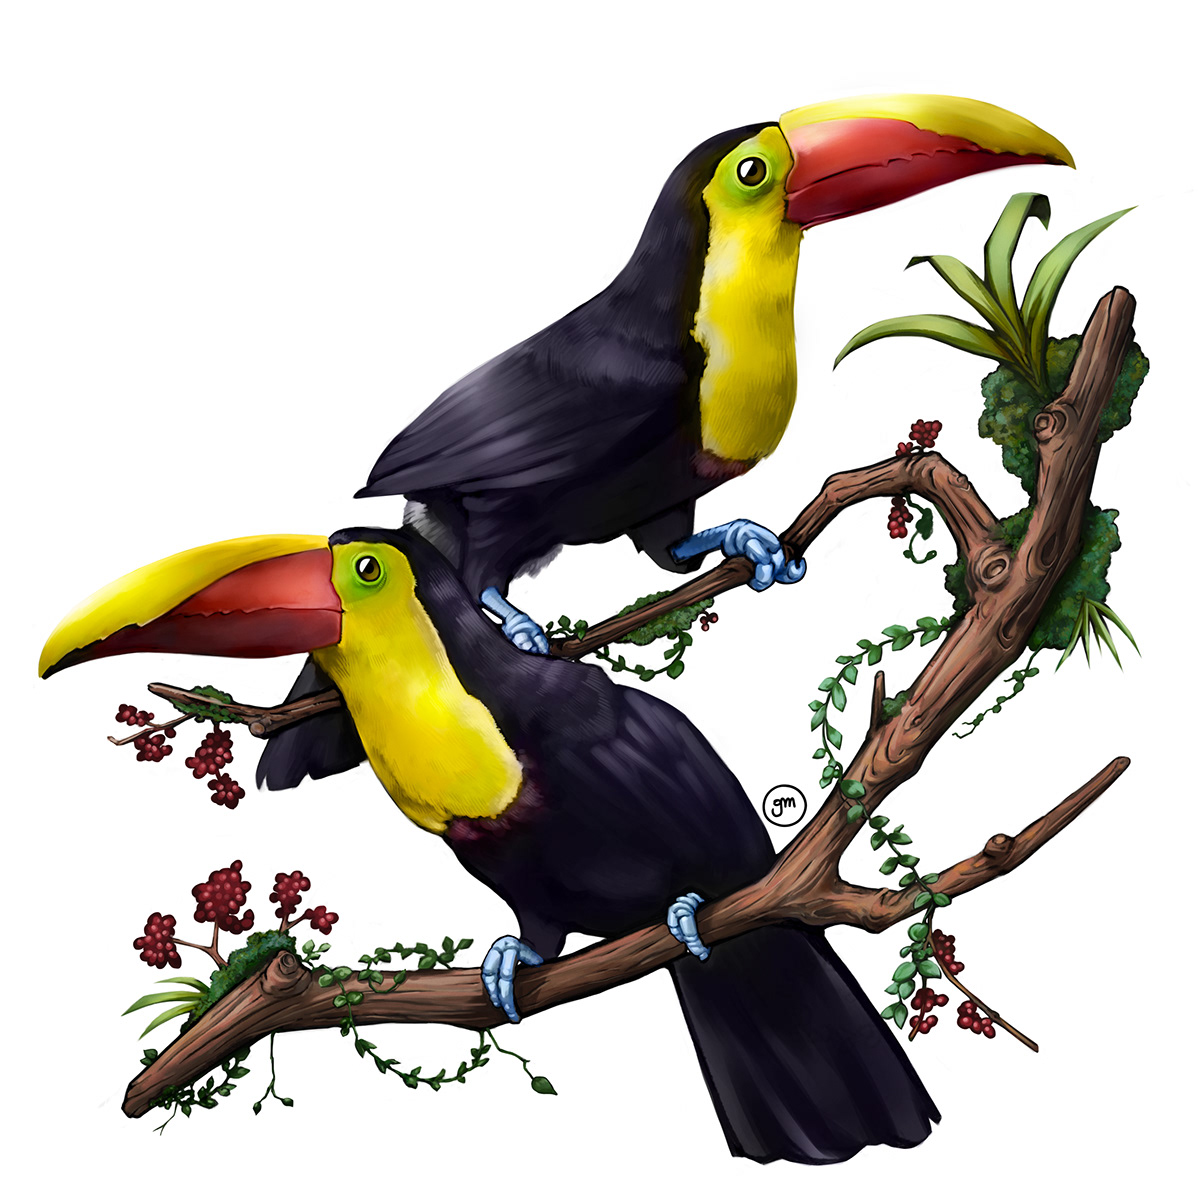 toco toucans digital painting